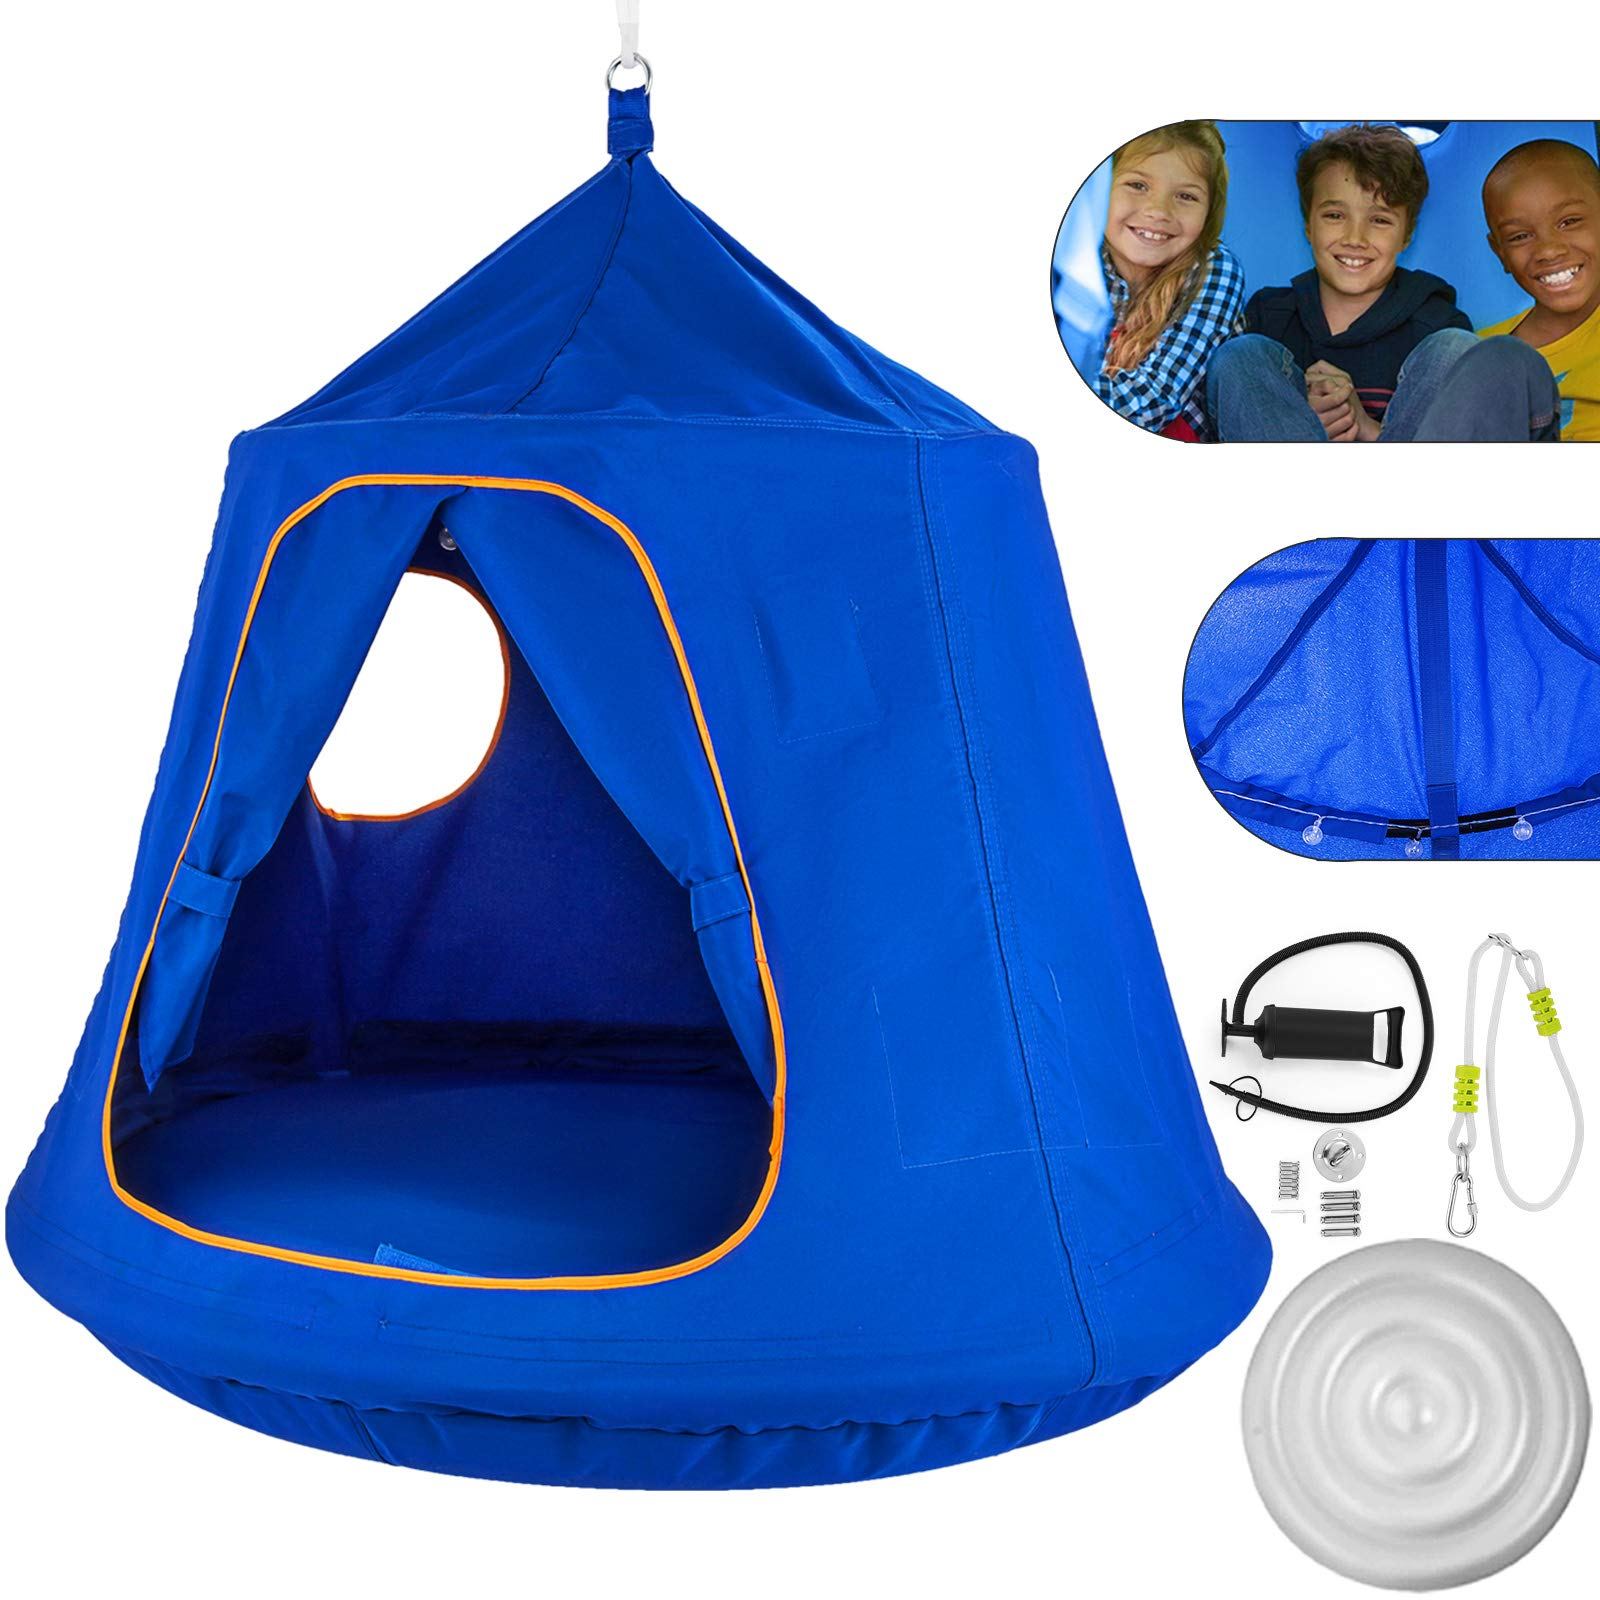 Mophorn Hanging Tree Tent 45 diam x 54 H Hanging Tent Swing Tent Waterproof Hanging Tree&Ceiling Hammock Tent Green Kids Outdoor Tents Playhouses (Blue) by Mophorn (Image #1)